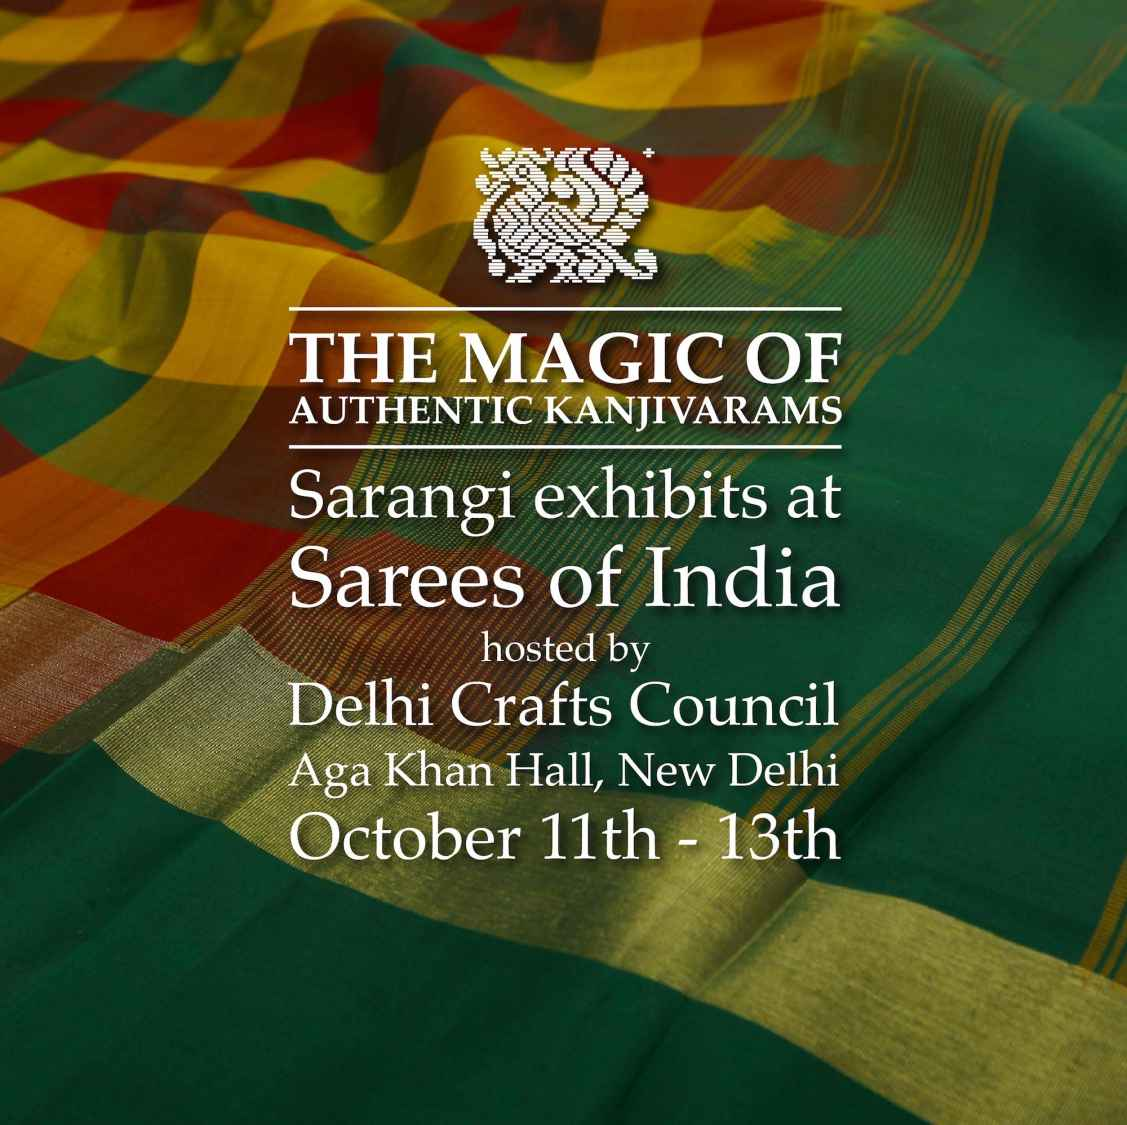 Kanjivaram Silk Saree Exhibition in Delhi | Sarees of India 2018